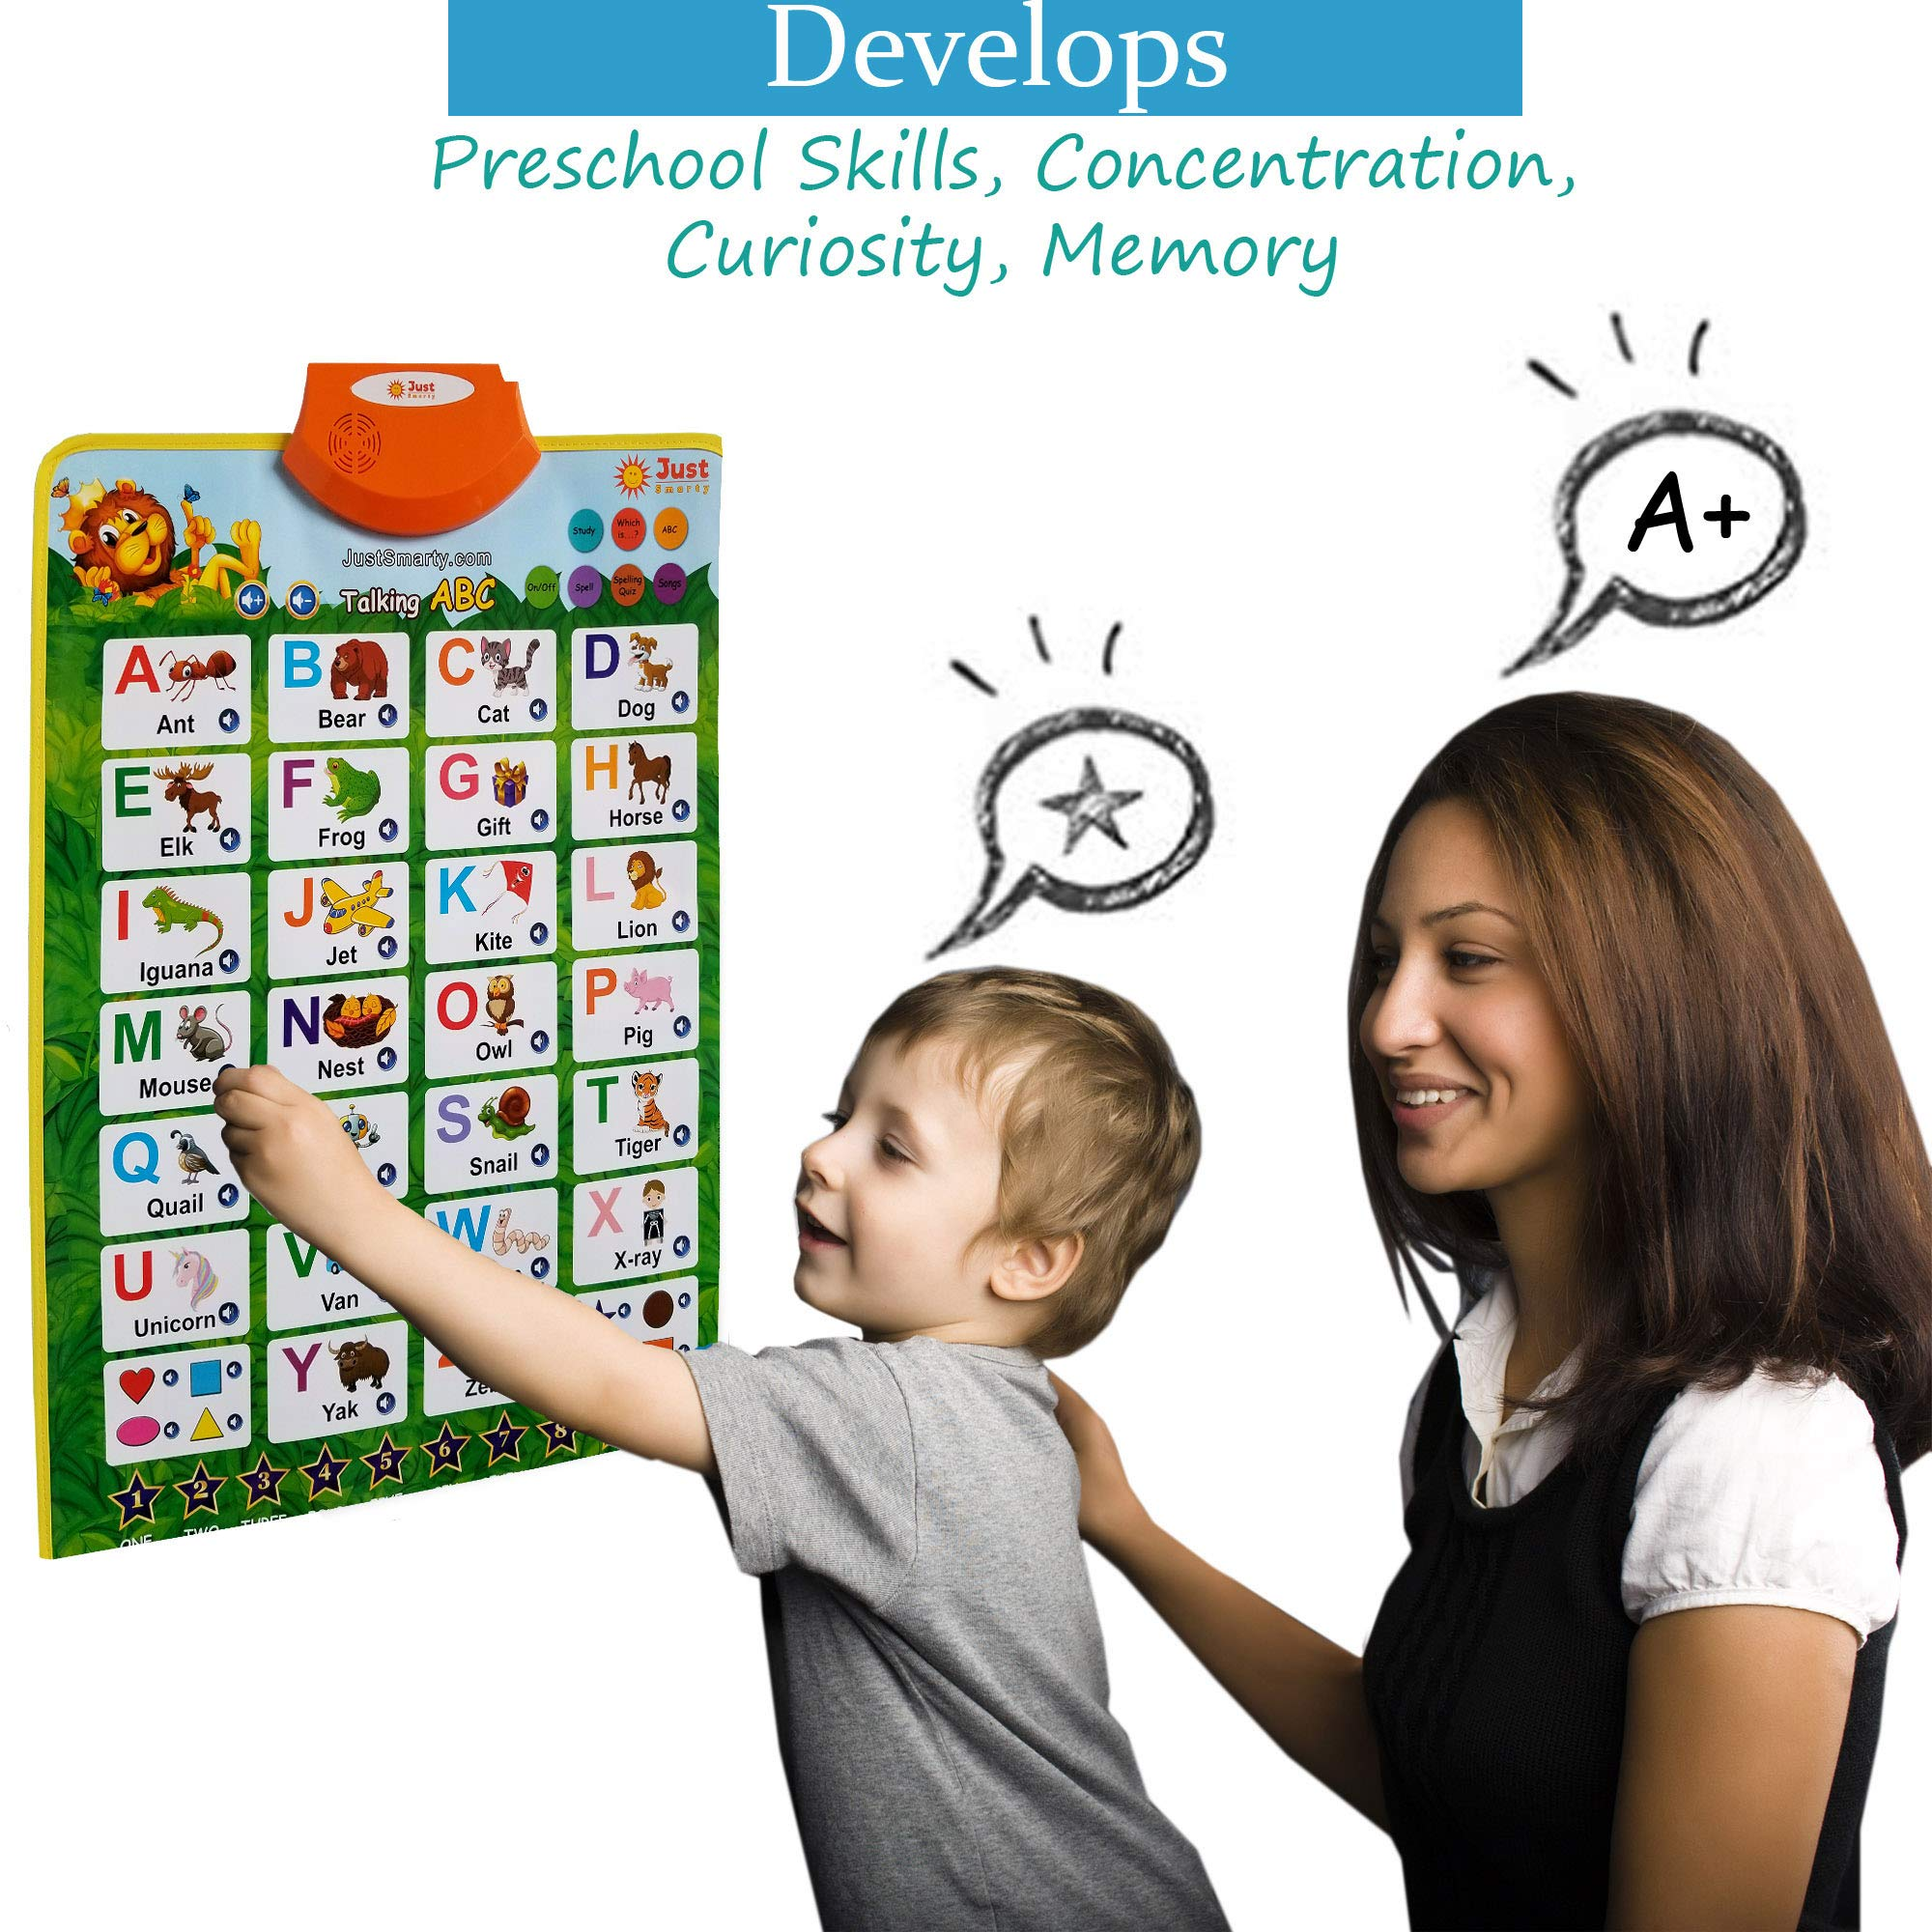 Just Smarty Electronic Interactive Alphabet Wall Chart with Shapes, Colors and Spelling, Talking ABC & 123s & Music Poster, Best Educational Toy for Toddler. Kids Fun Learning at Daycare, Preschool by Just Smarty (Image #4)